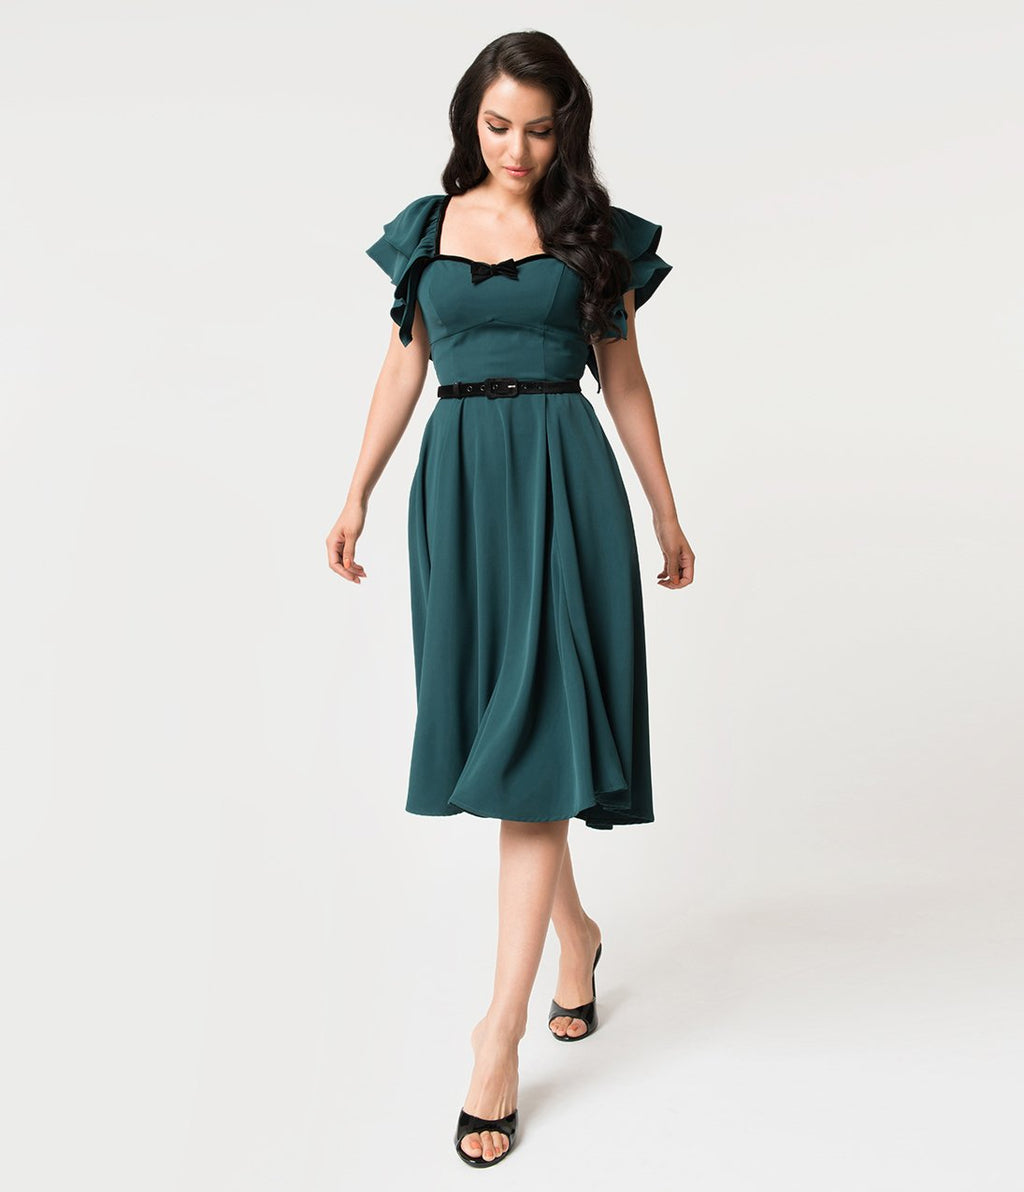 Micheline Pitt For Unique Vintage Hunter Green Carmelita Swing Dress (XS, XL and 4XL ONLY) - Natasha Marie Clothing